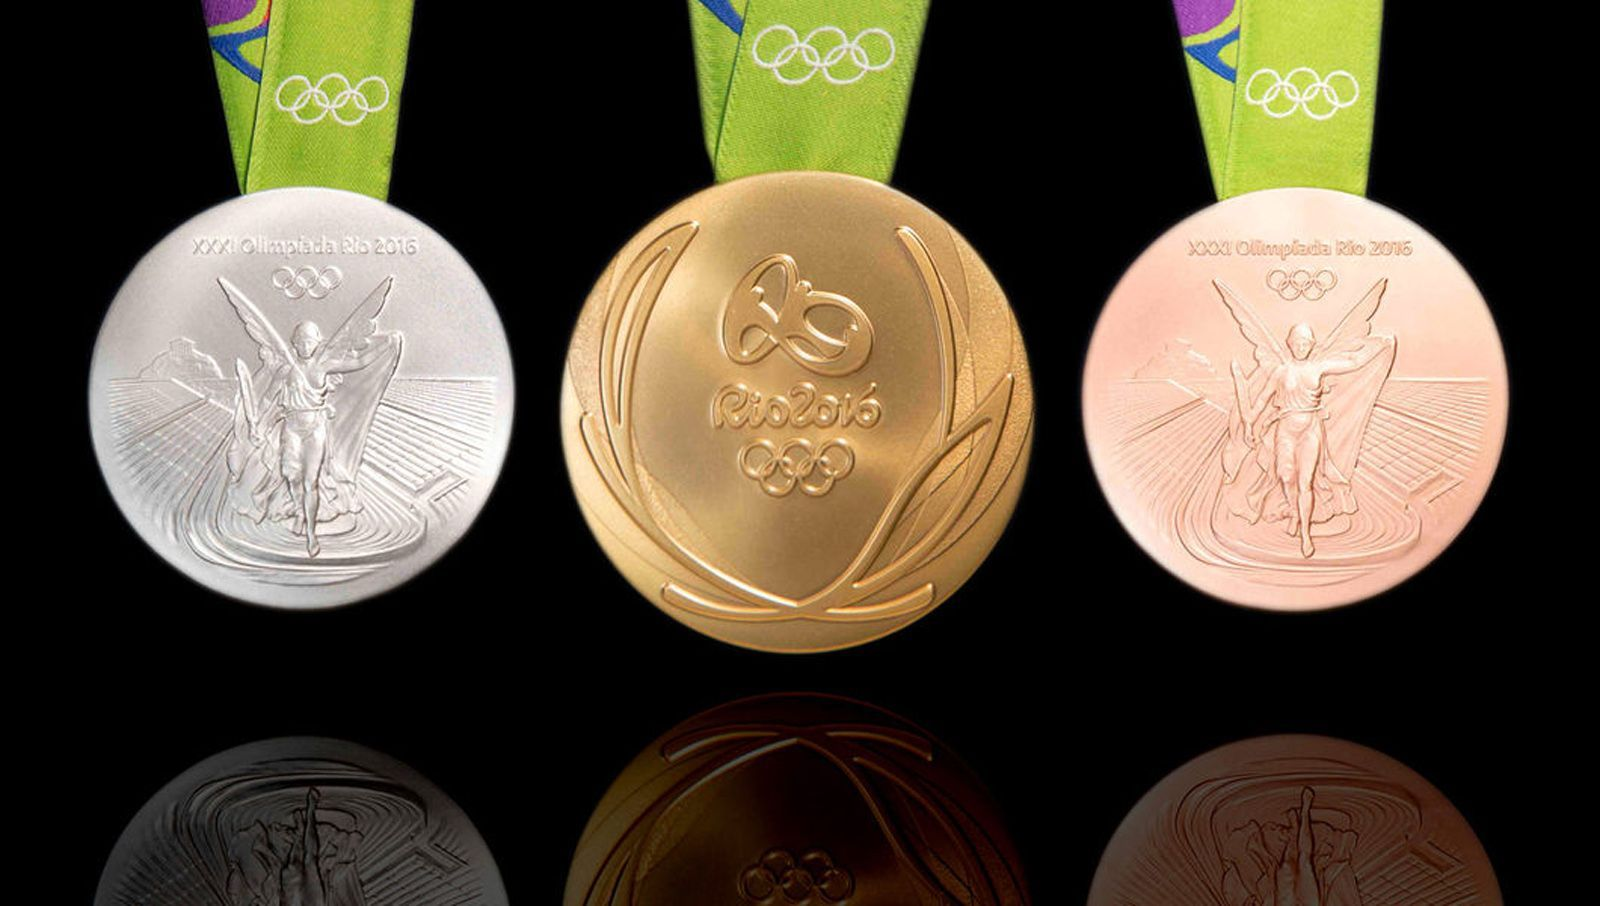 Olympic medals Rio 2016. © IOC.